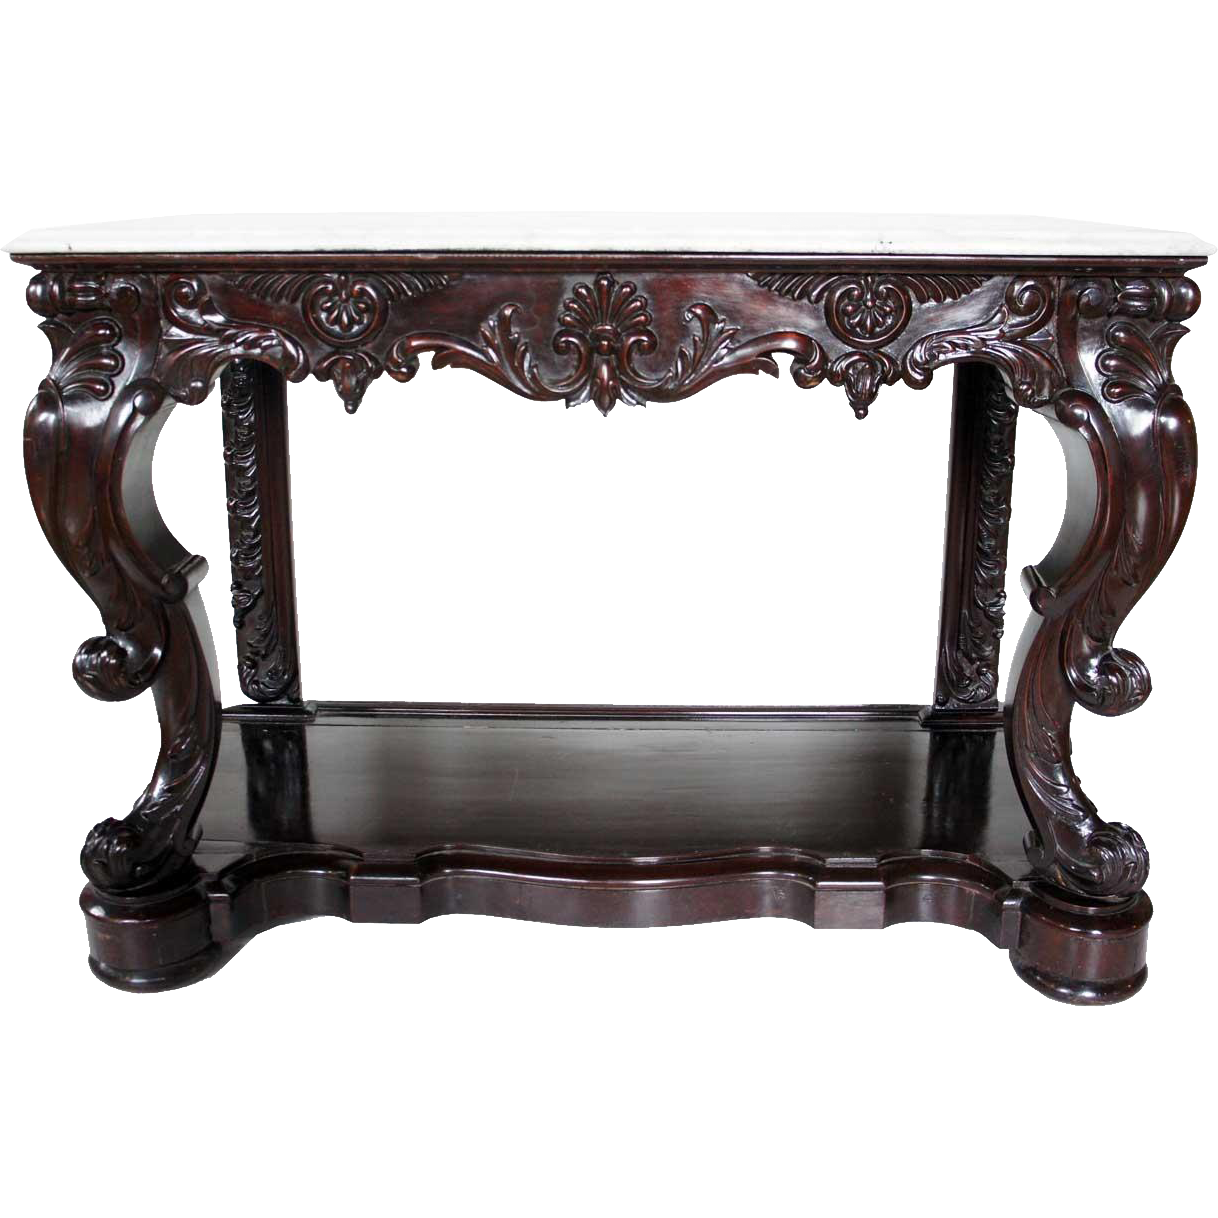 Anglo Indian Rococo Revival Mahogany and Marble Console